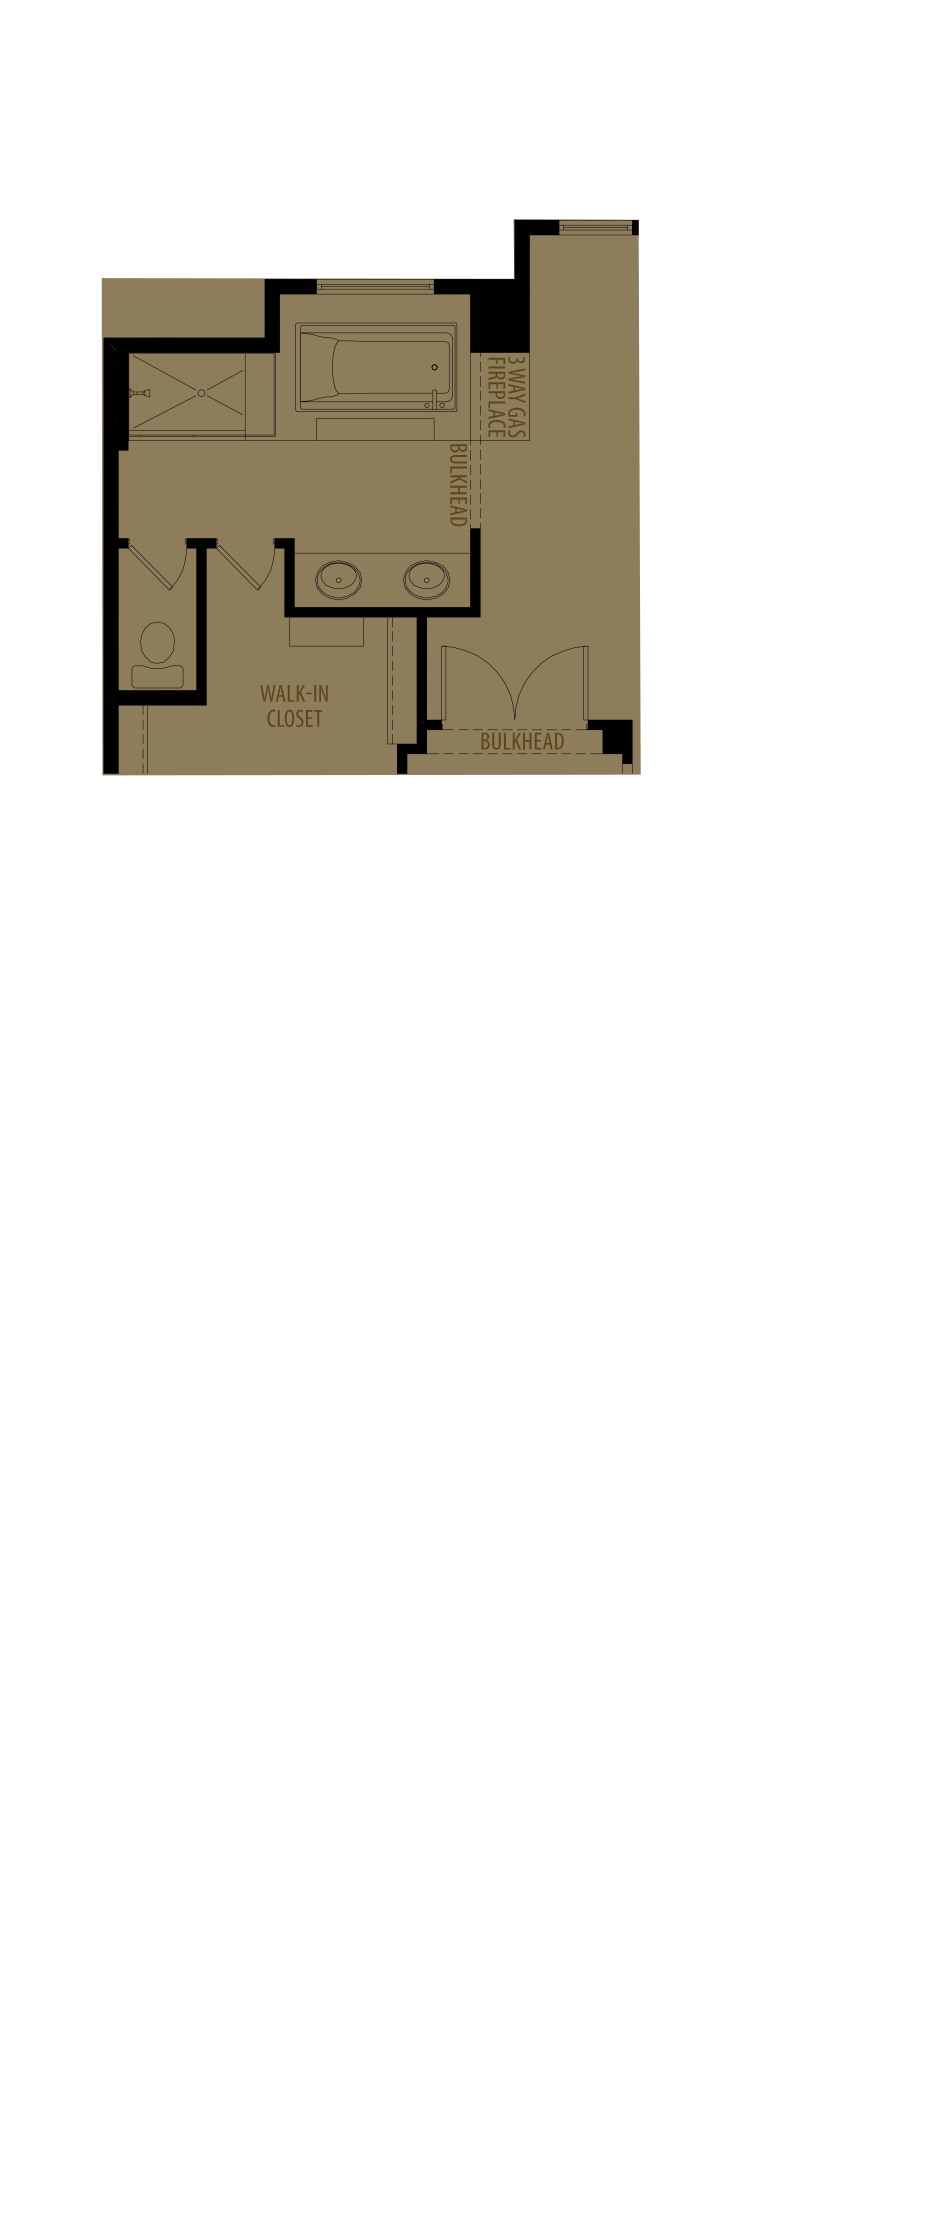 Revised Ensuite Layout Adds 8 Sq Ft